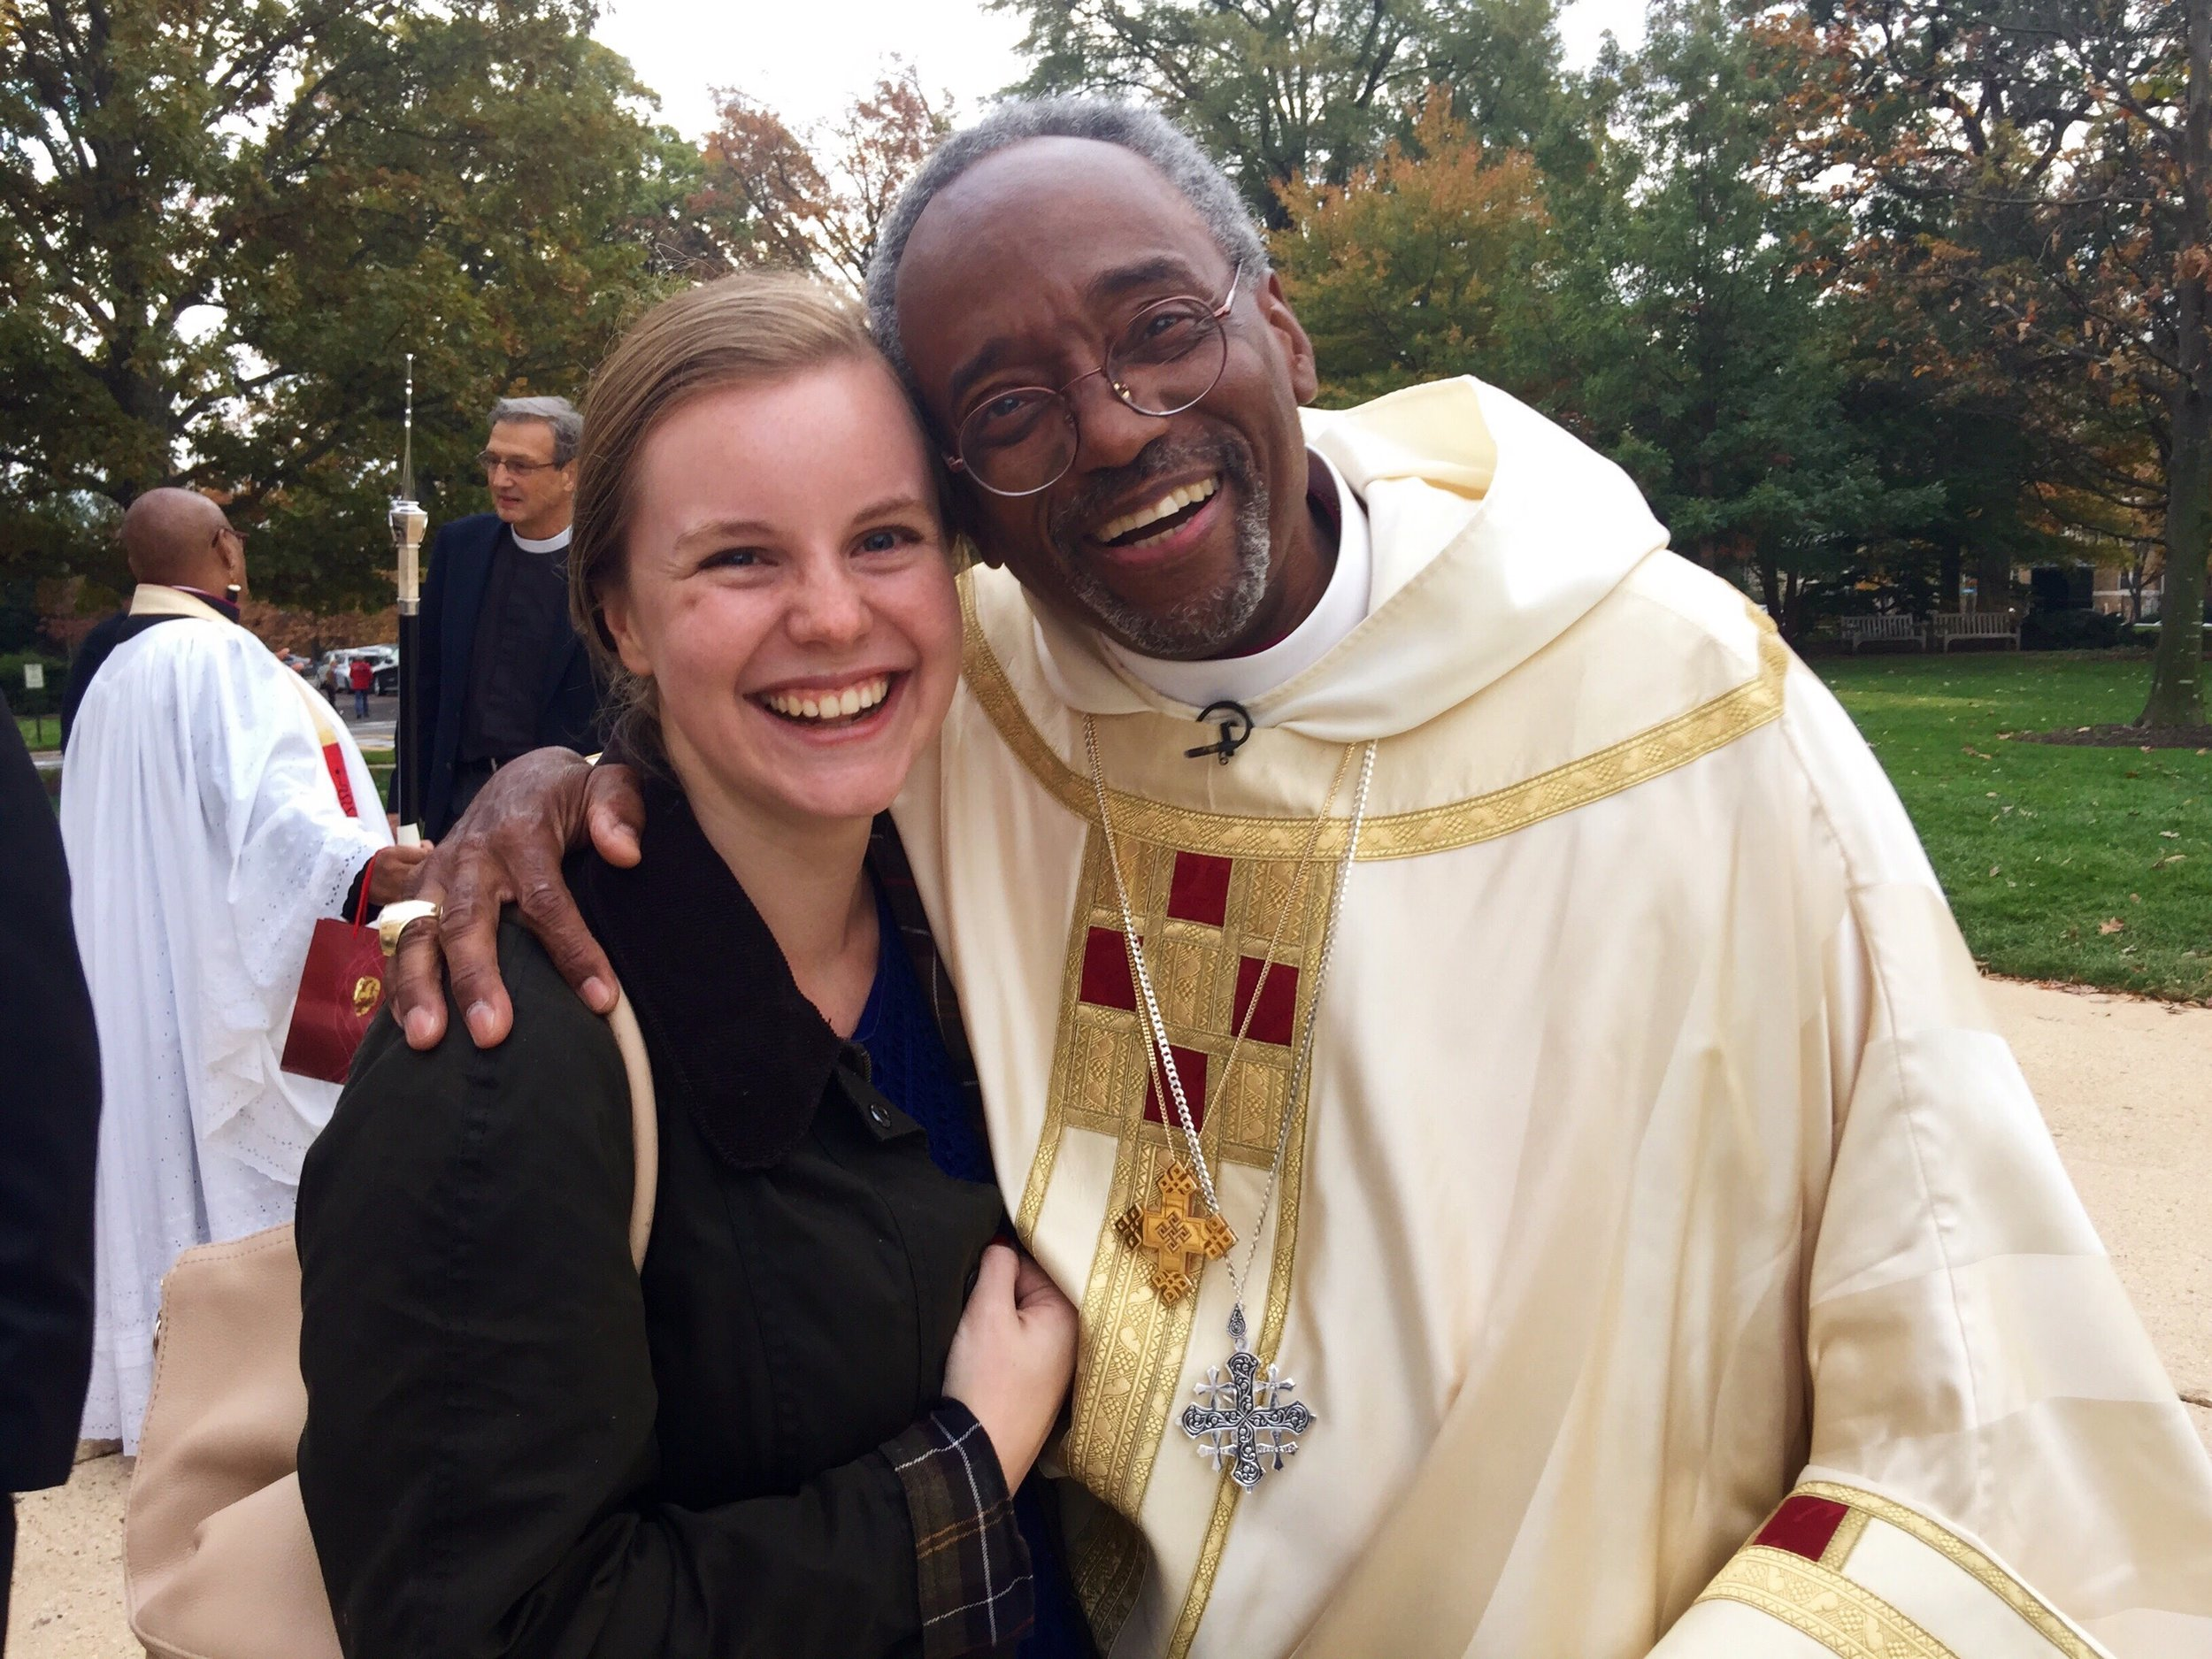 With Bishop Curry in 2015. I'm now one degree of separation from Harry and Meghan!